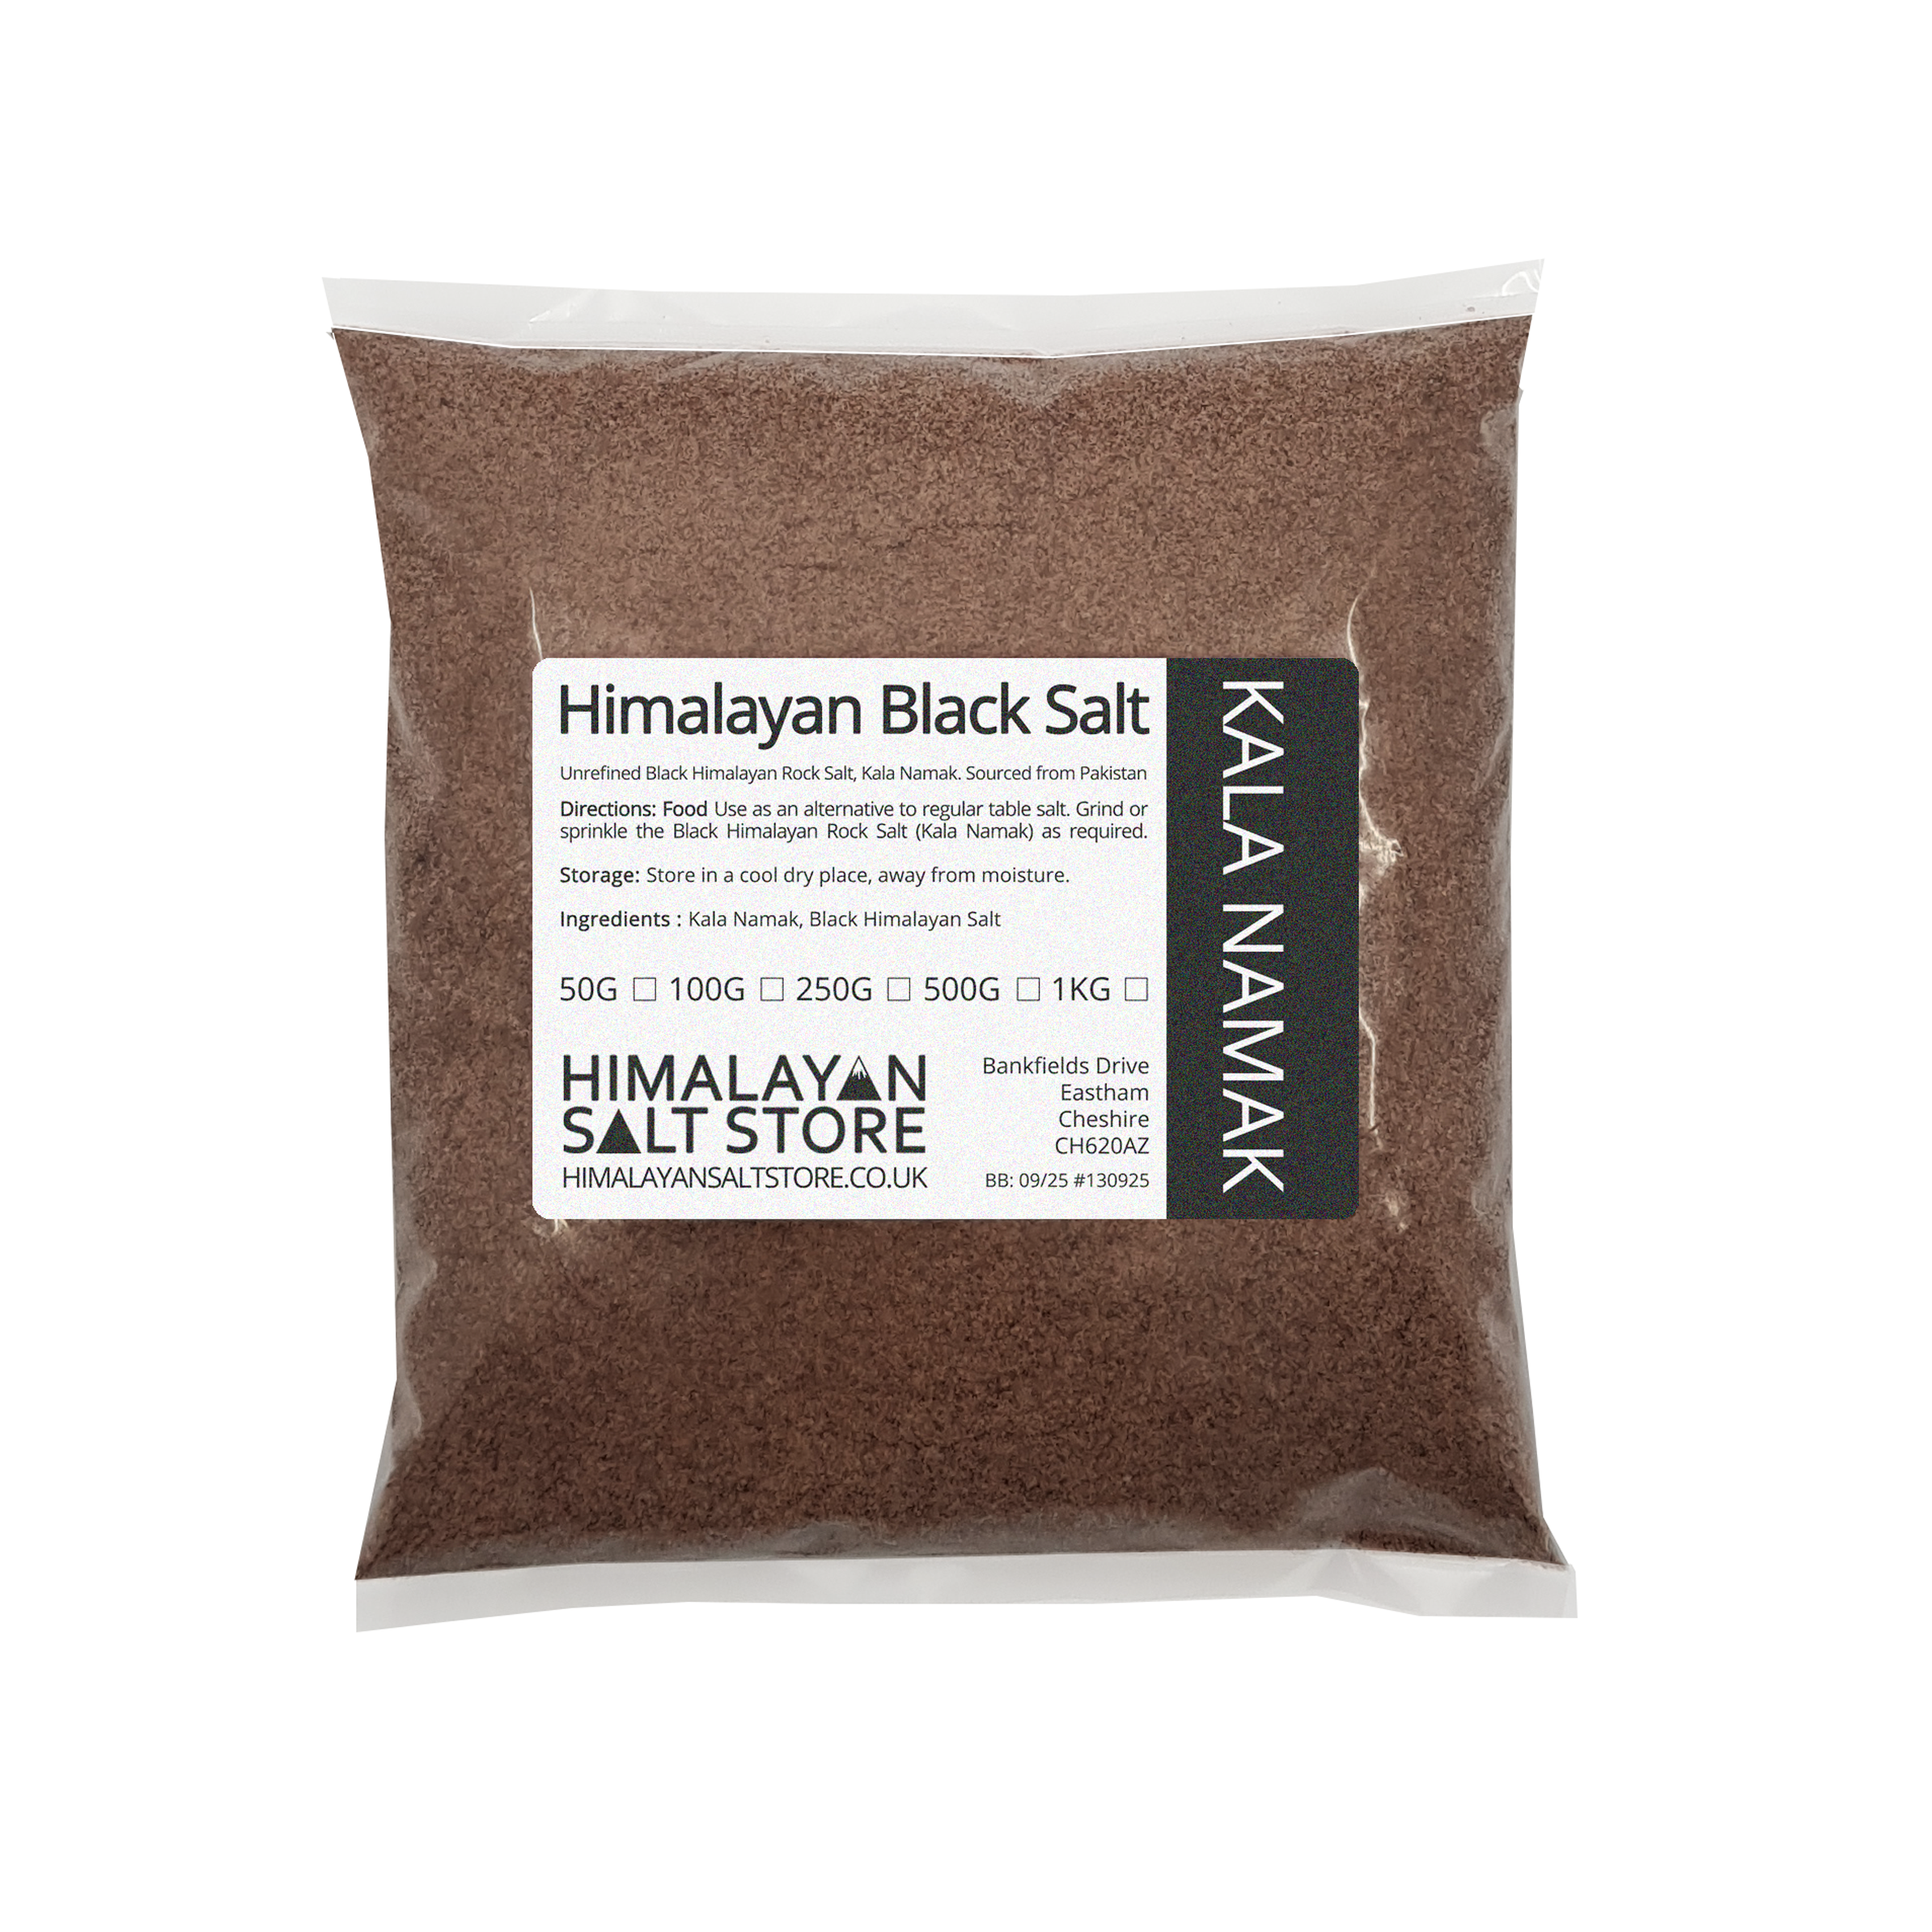 Kala Namak Black Himalayan Salt - Food